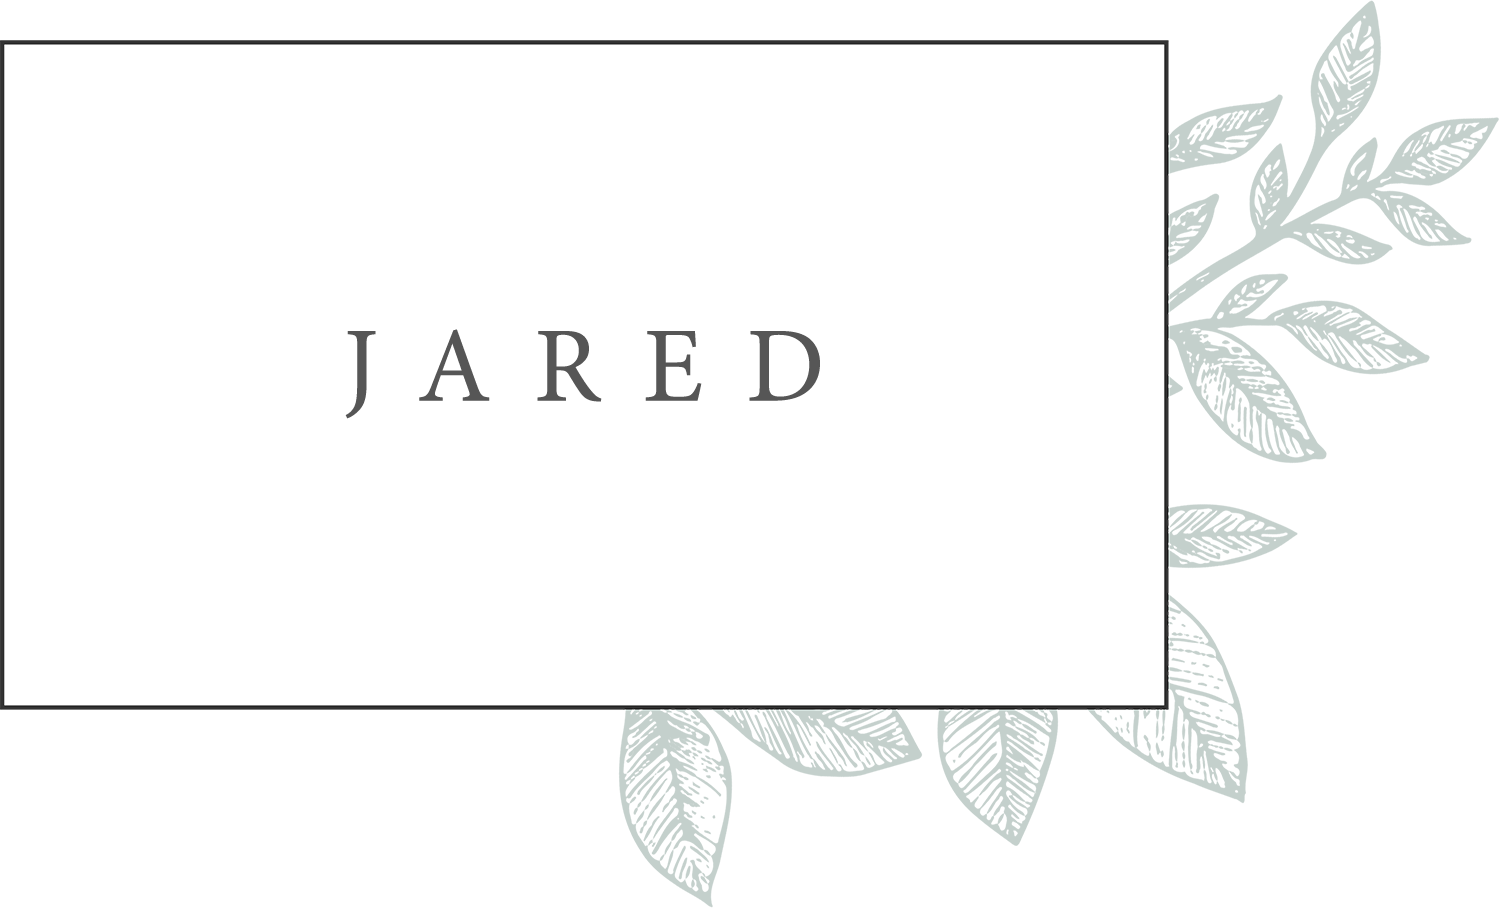 Jared-about-nametag.png